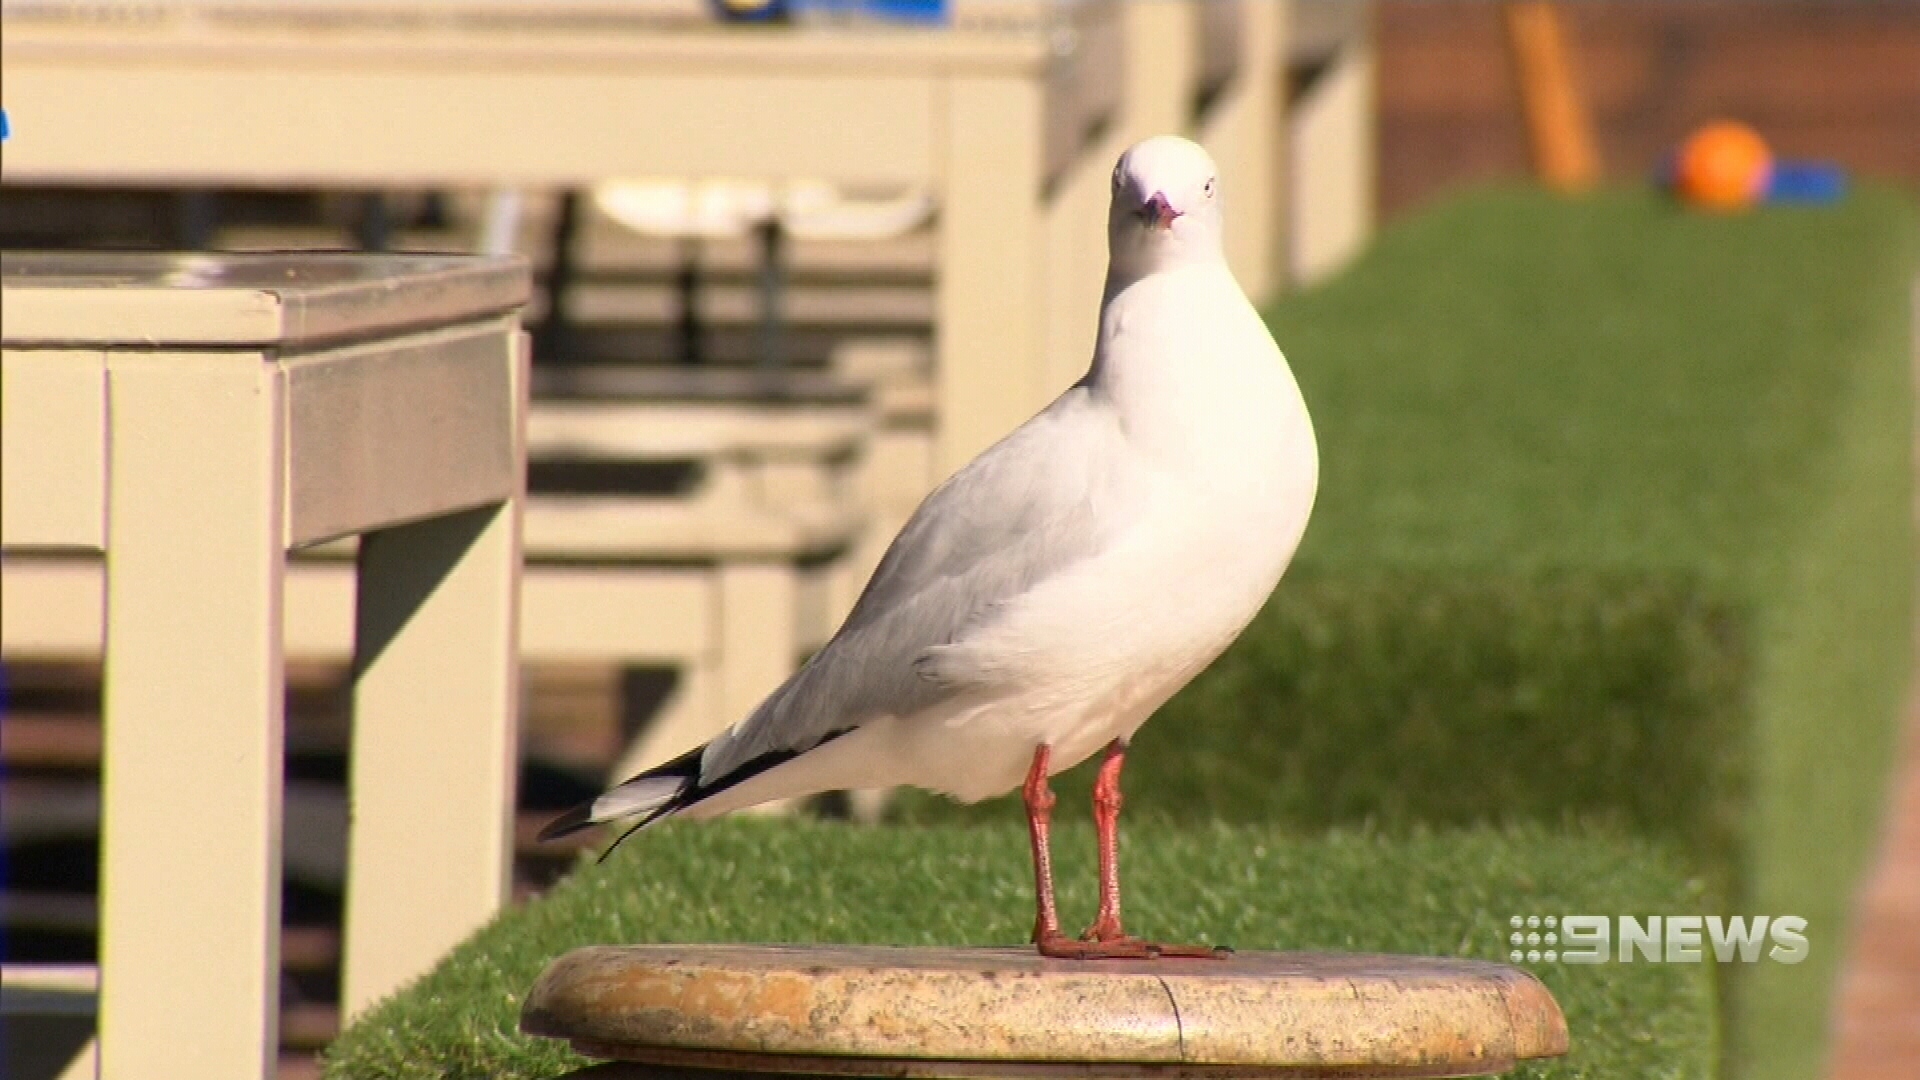 Water guns used by restaurant to 'blast' seagulls away